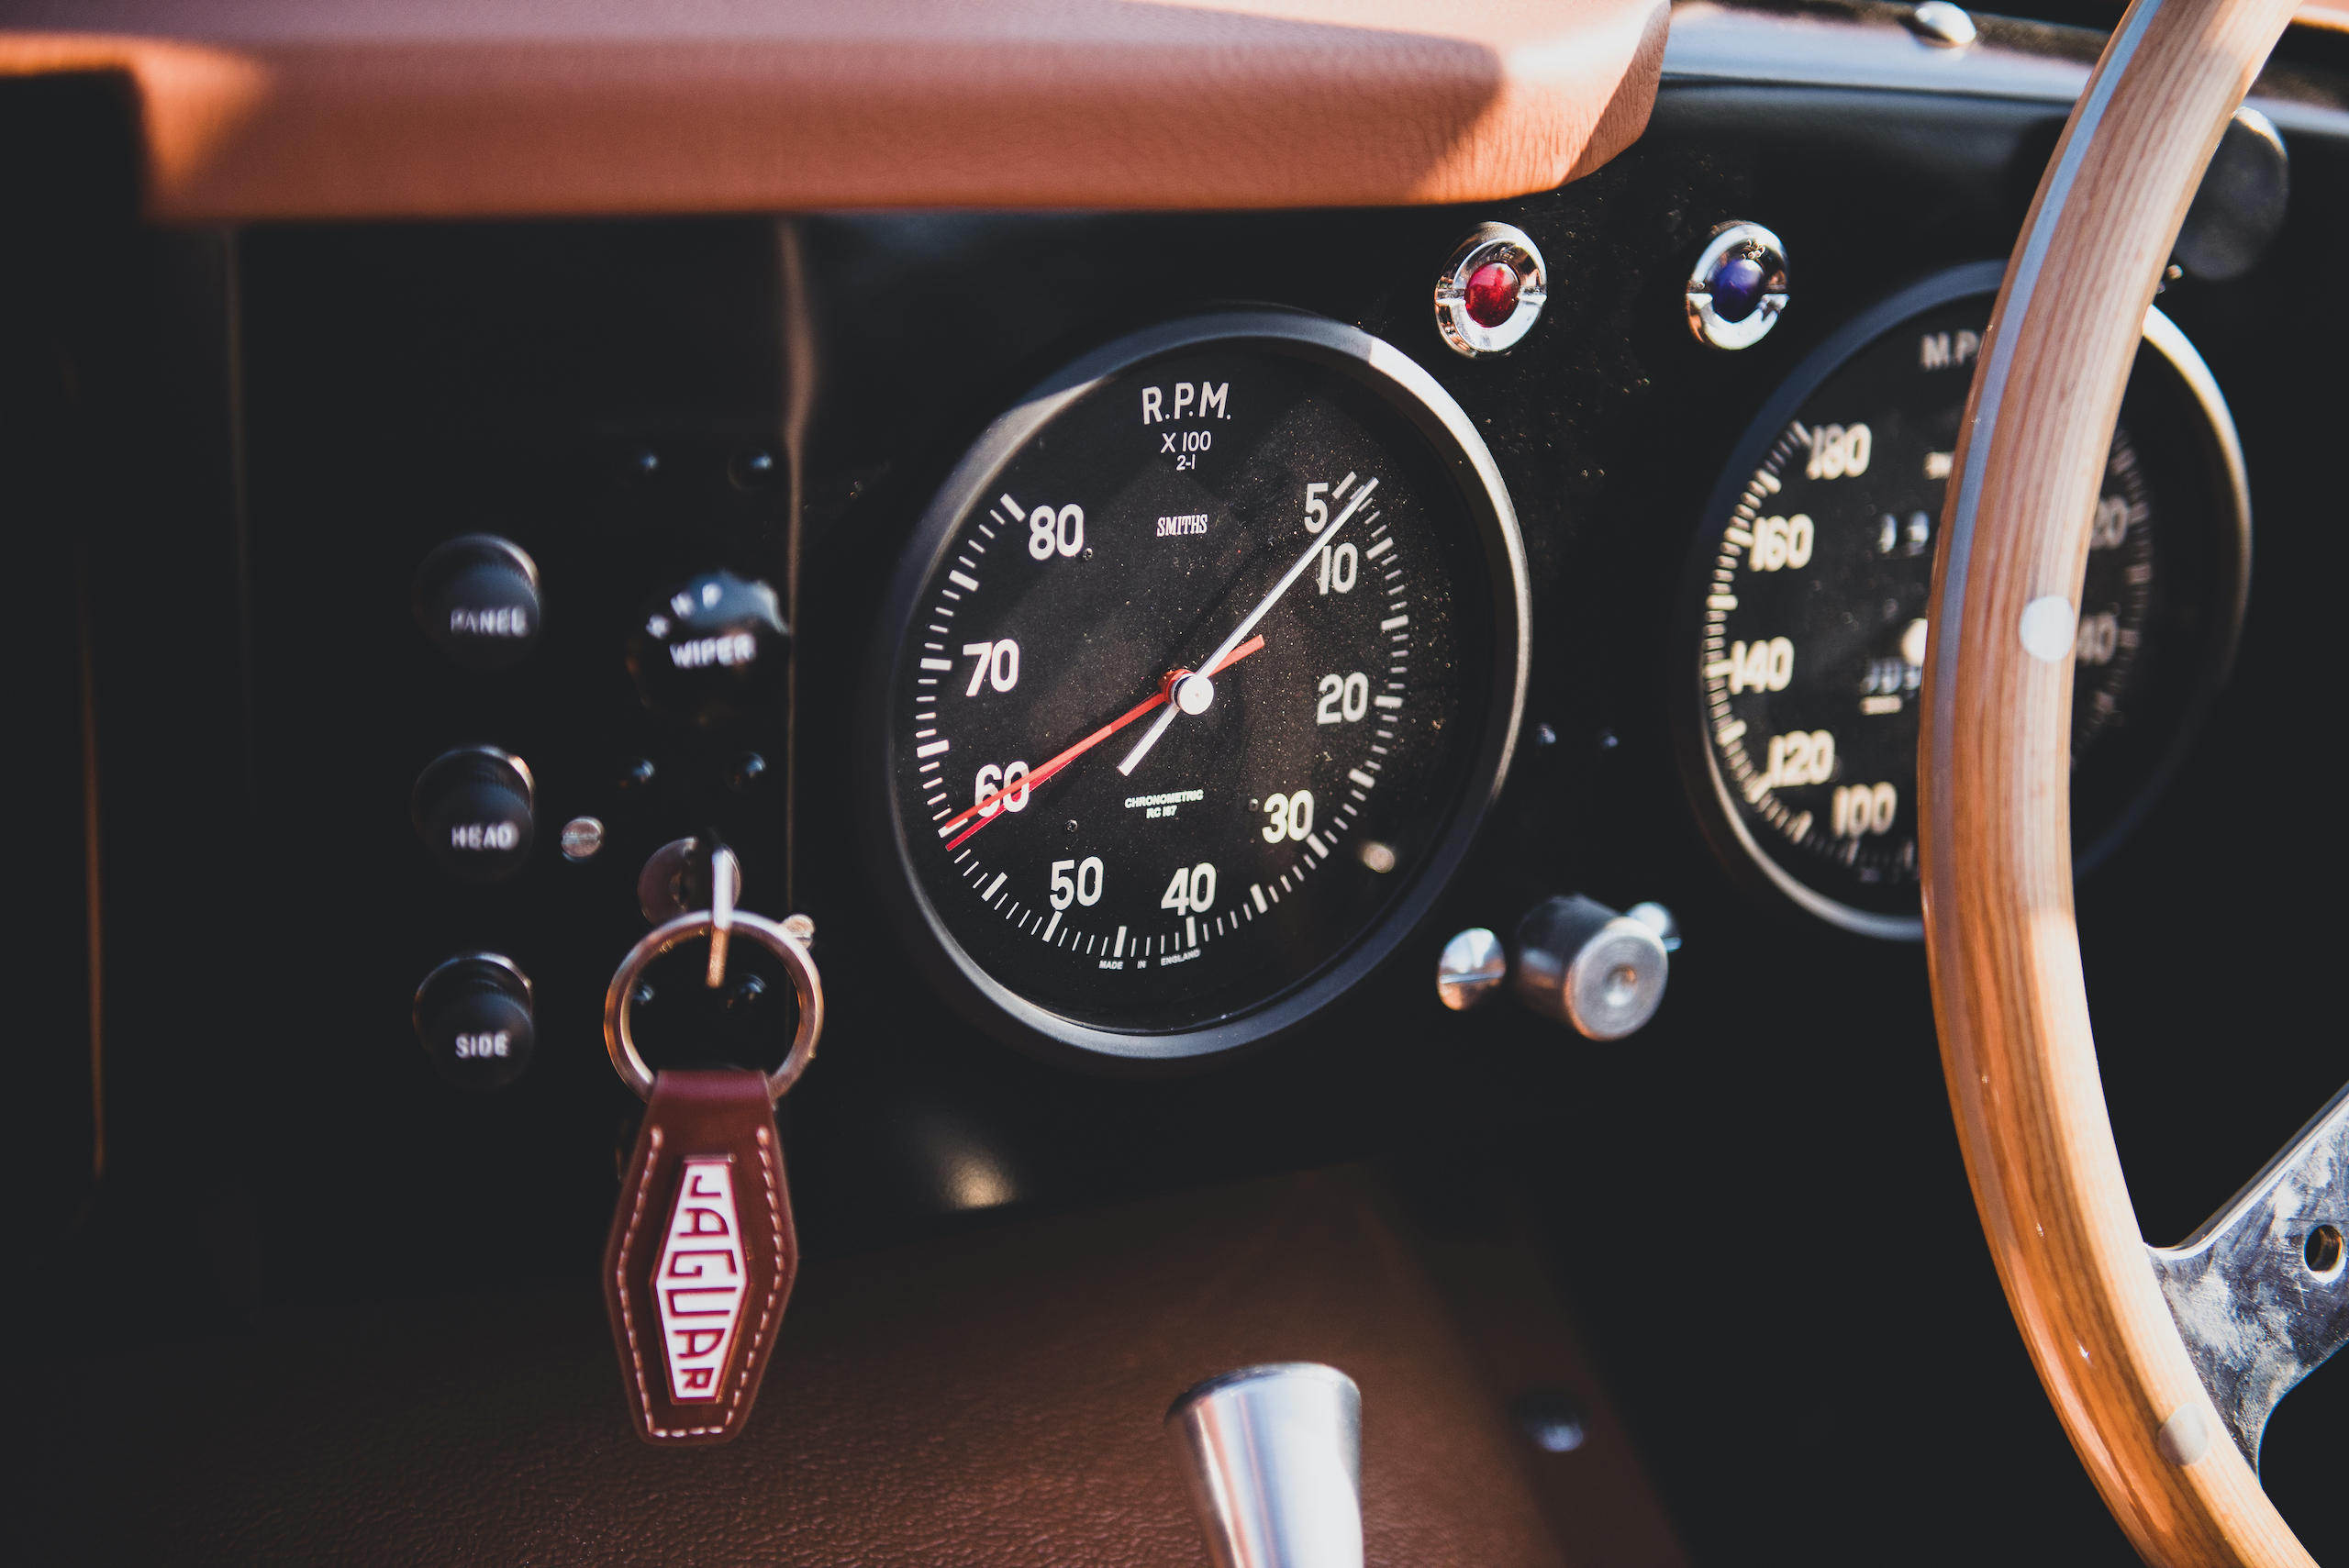 1957 Jag XKSS gauges and ignition detail